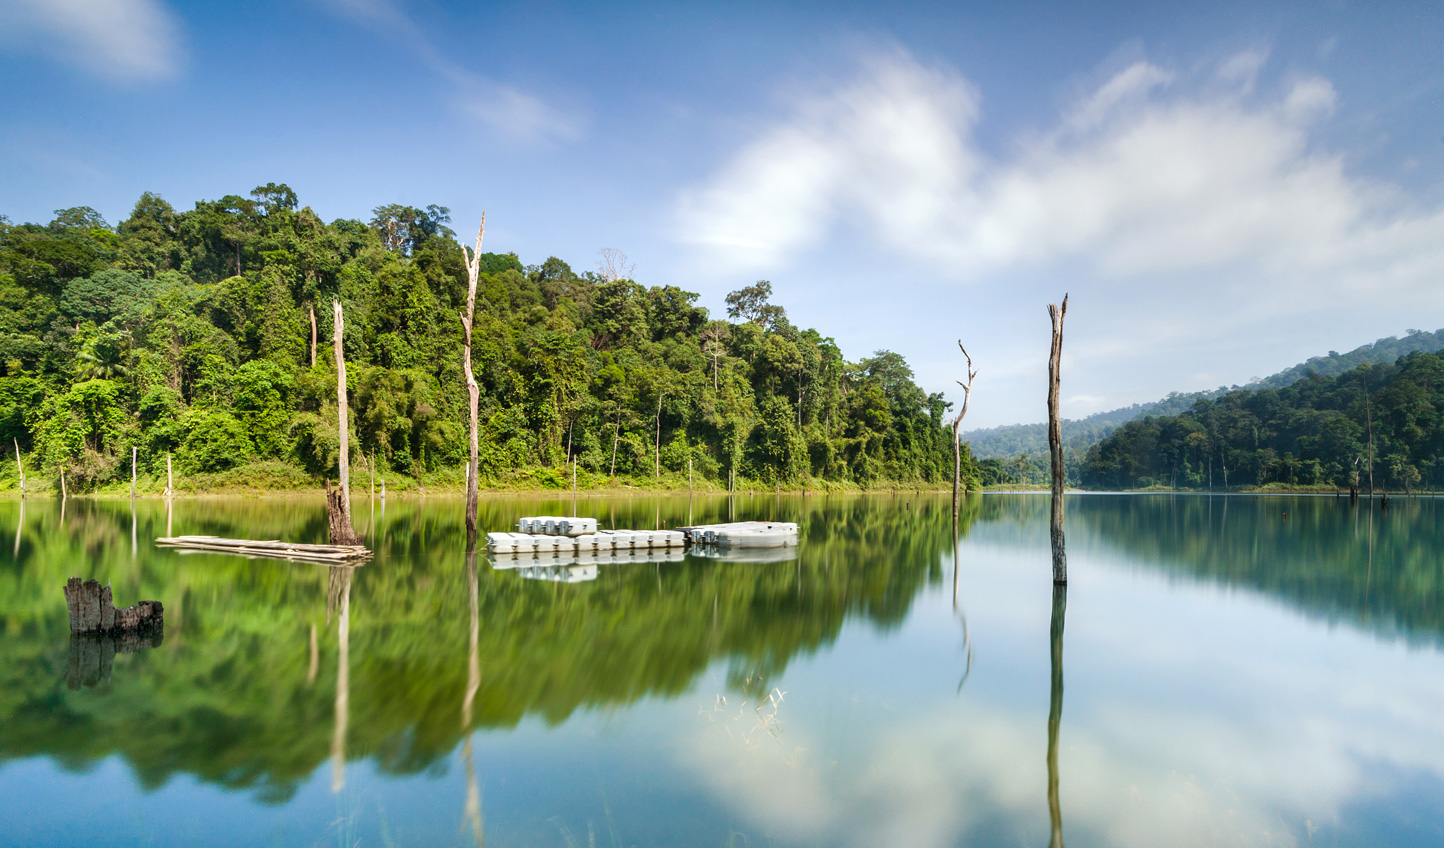 Discover Malaysia's lesser known side